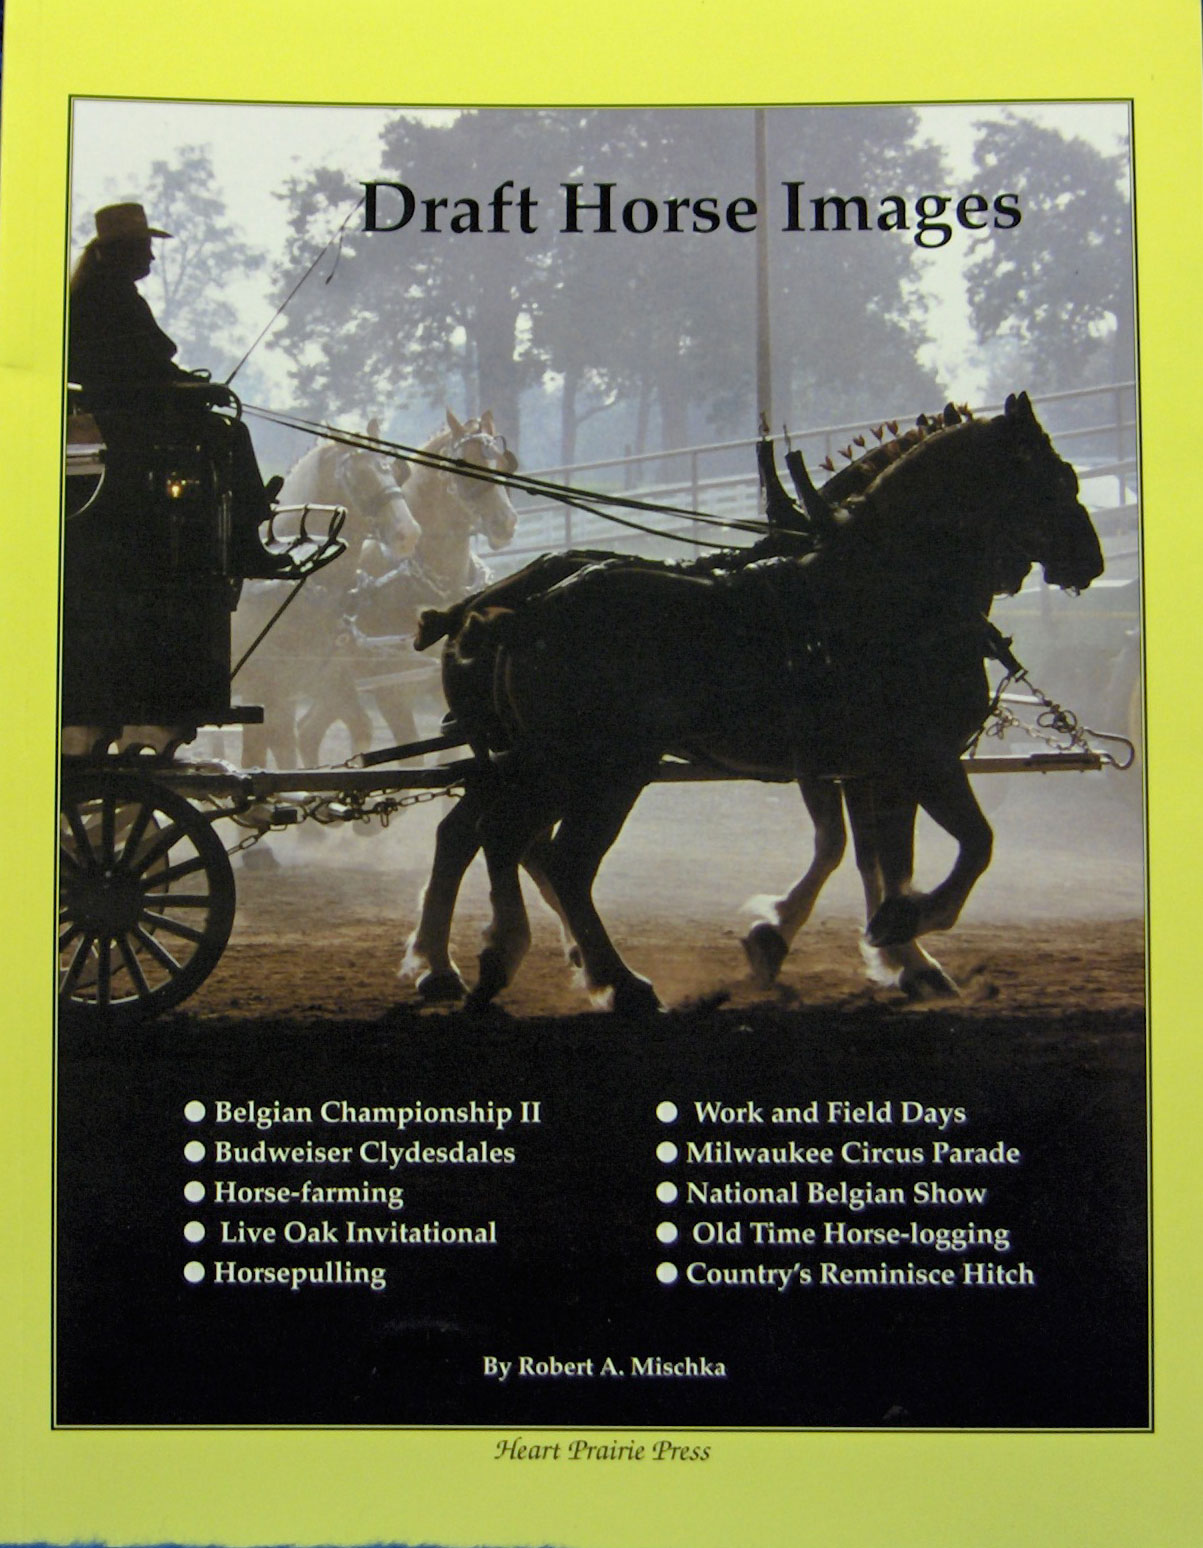 Draft Horse Images